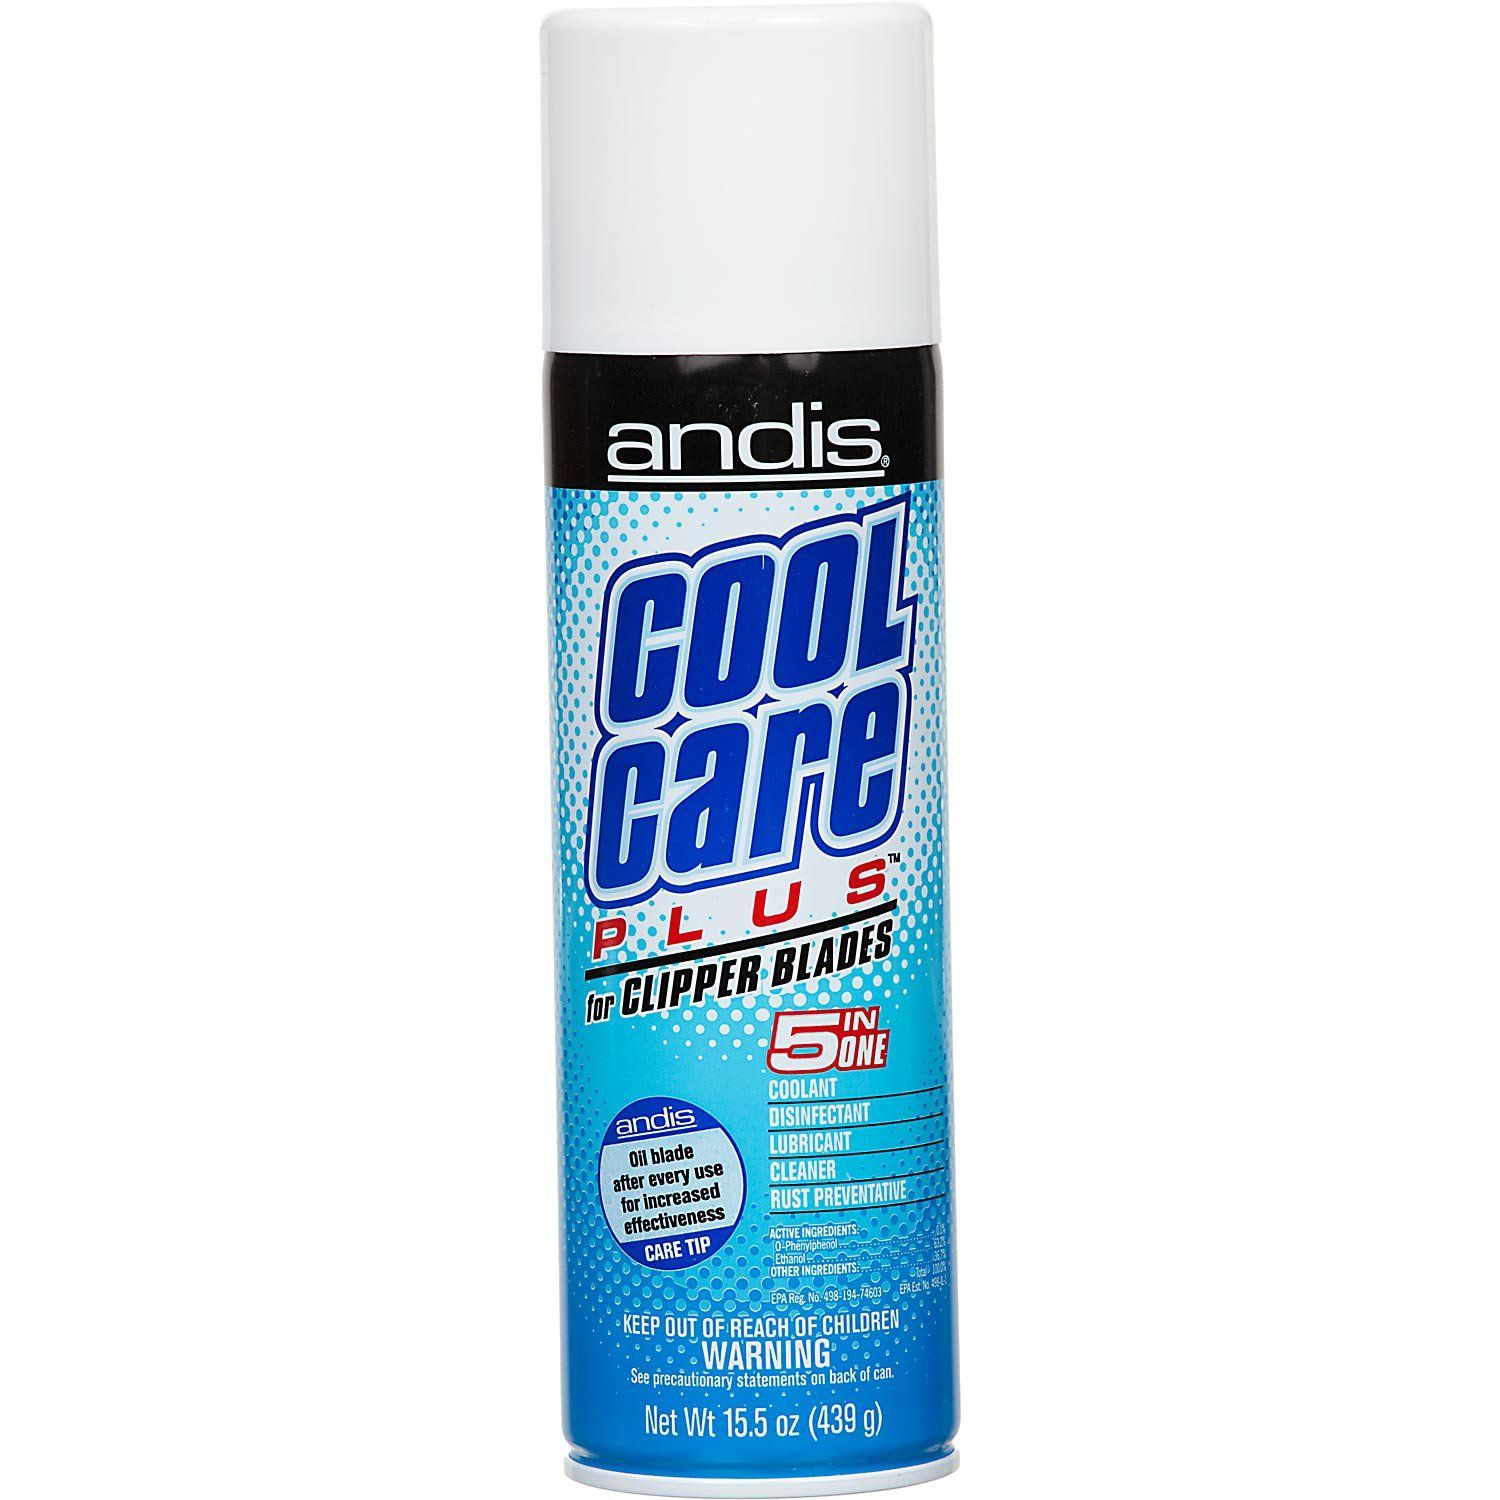 Andis Cool Care Plus 5 In 1 Spray - 15.5oz